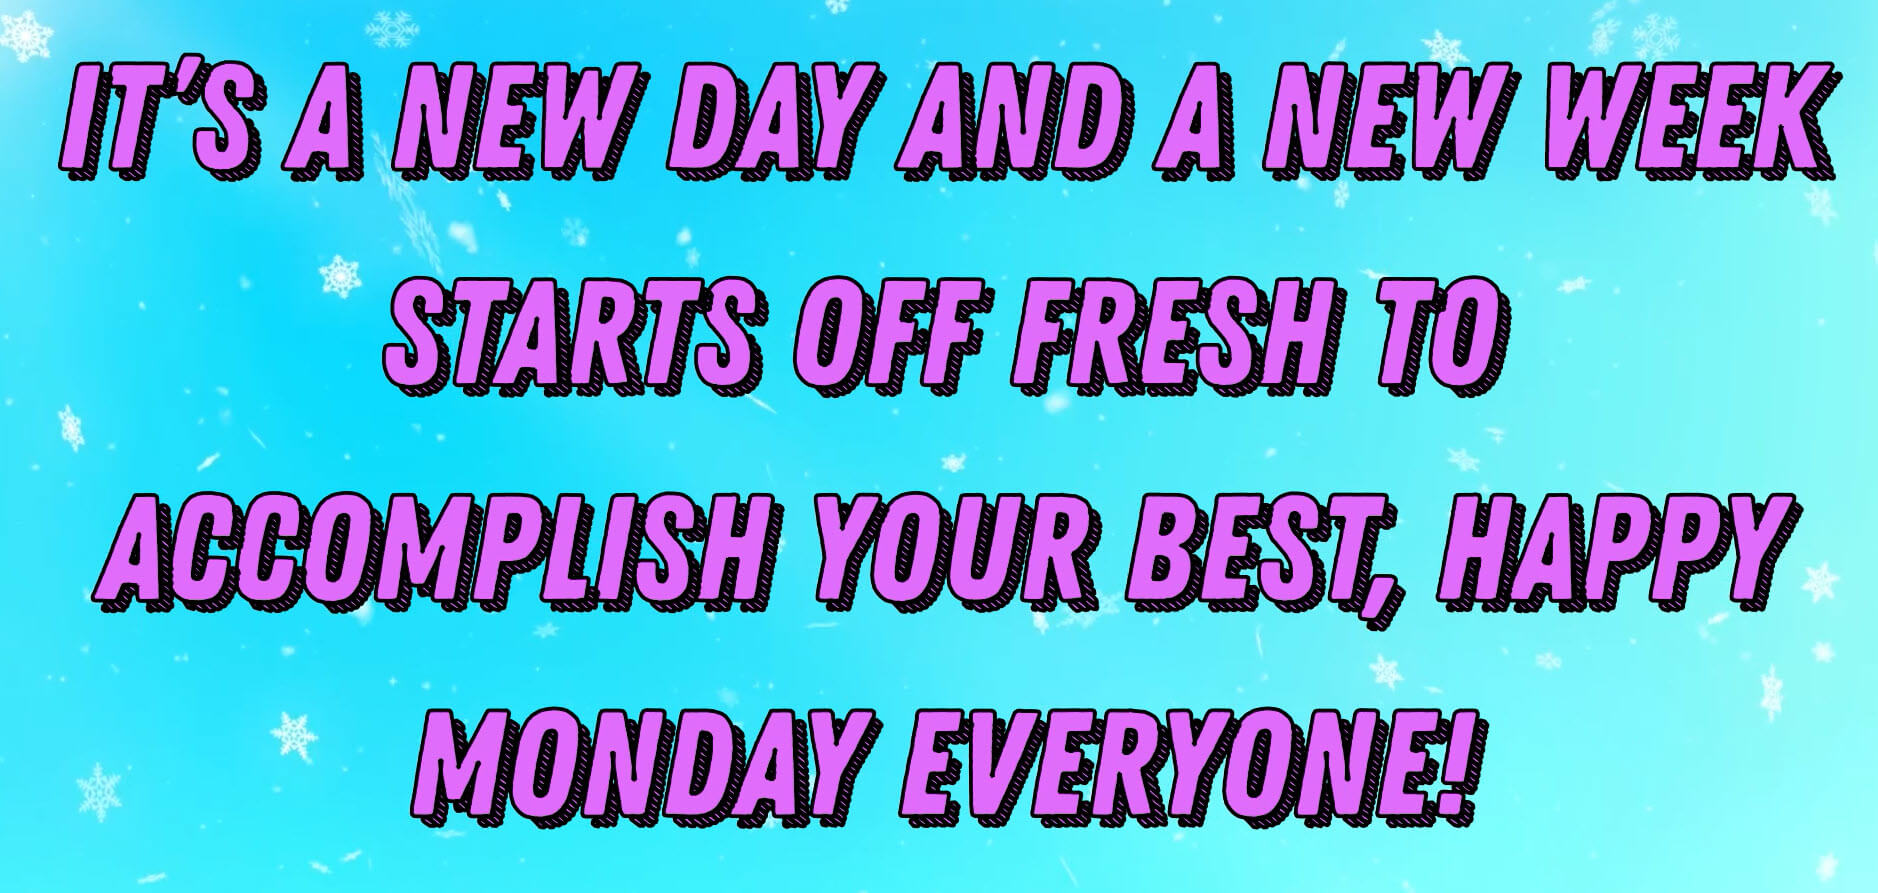 Happy Monday Wishes and Funny Messages & Monday Quotes